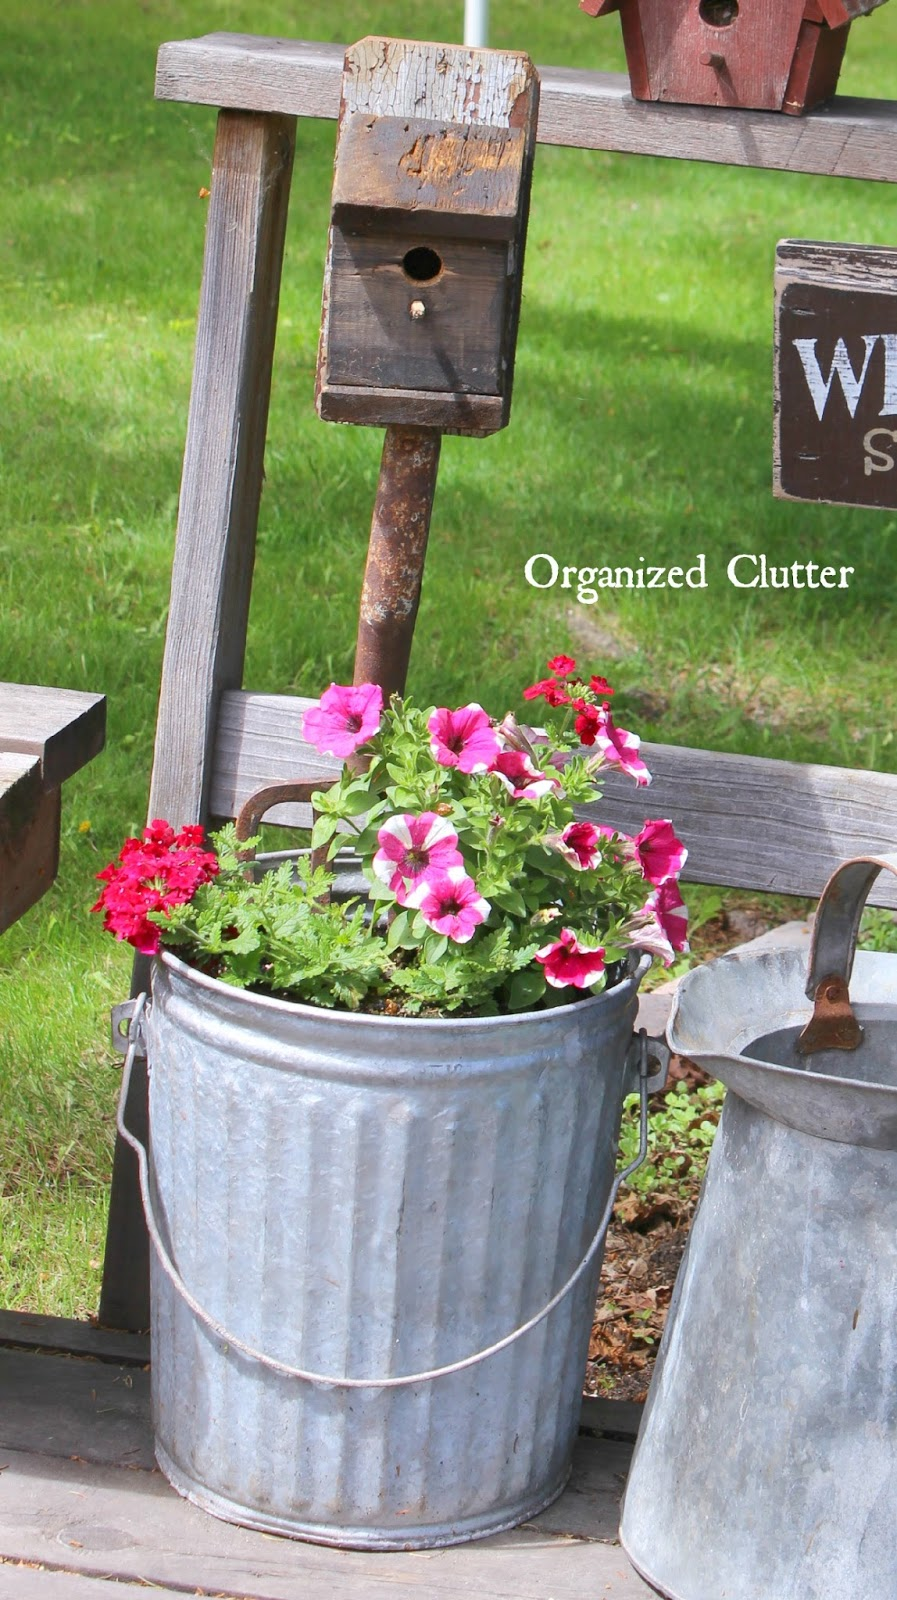 Organized Clutter Decorating the Deck with Rustic Birdhouses